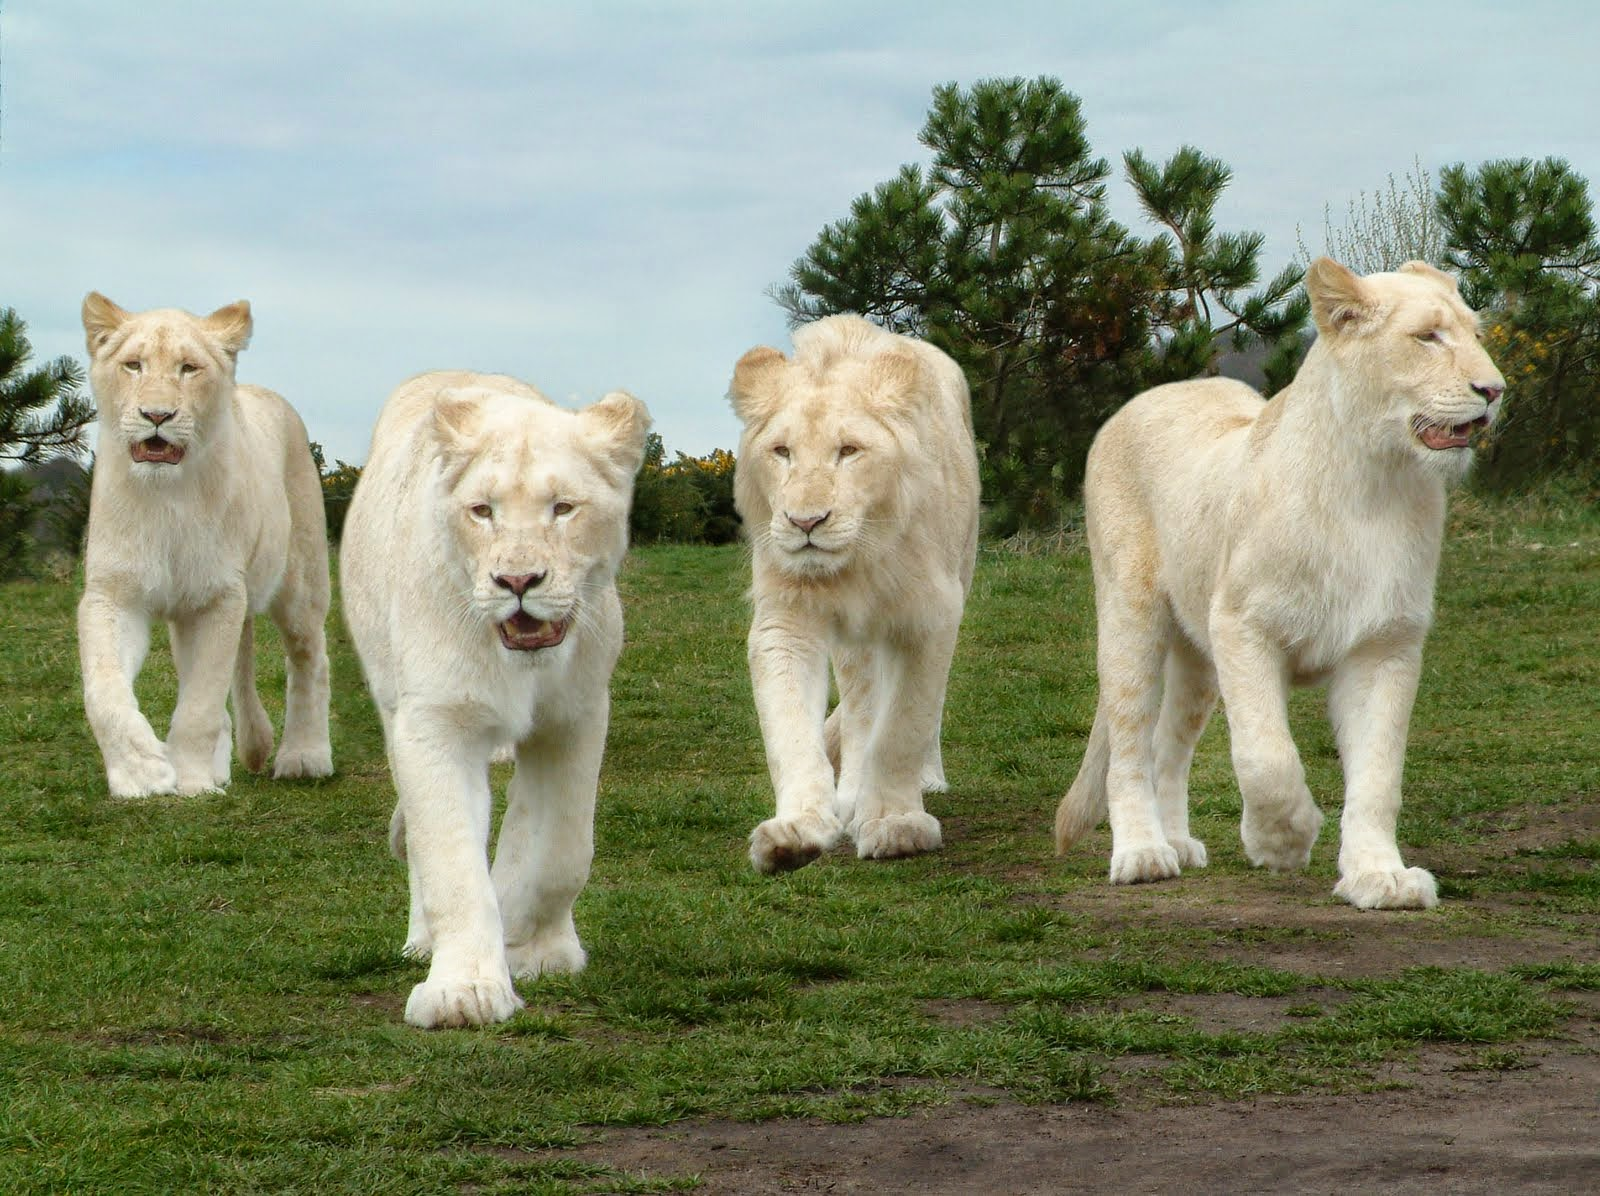 Lovable Images White Lion Hd Wallpaper Free Download. Milk Signs Of Stroke. Kidney Signs. Hutch Signs. Graphic Signs. Water Play Signs. Stomach Upset Signs. Dance Floor Signs Of Stroke. Two Signs Of Stroke